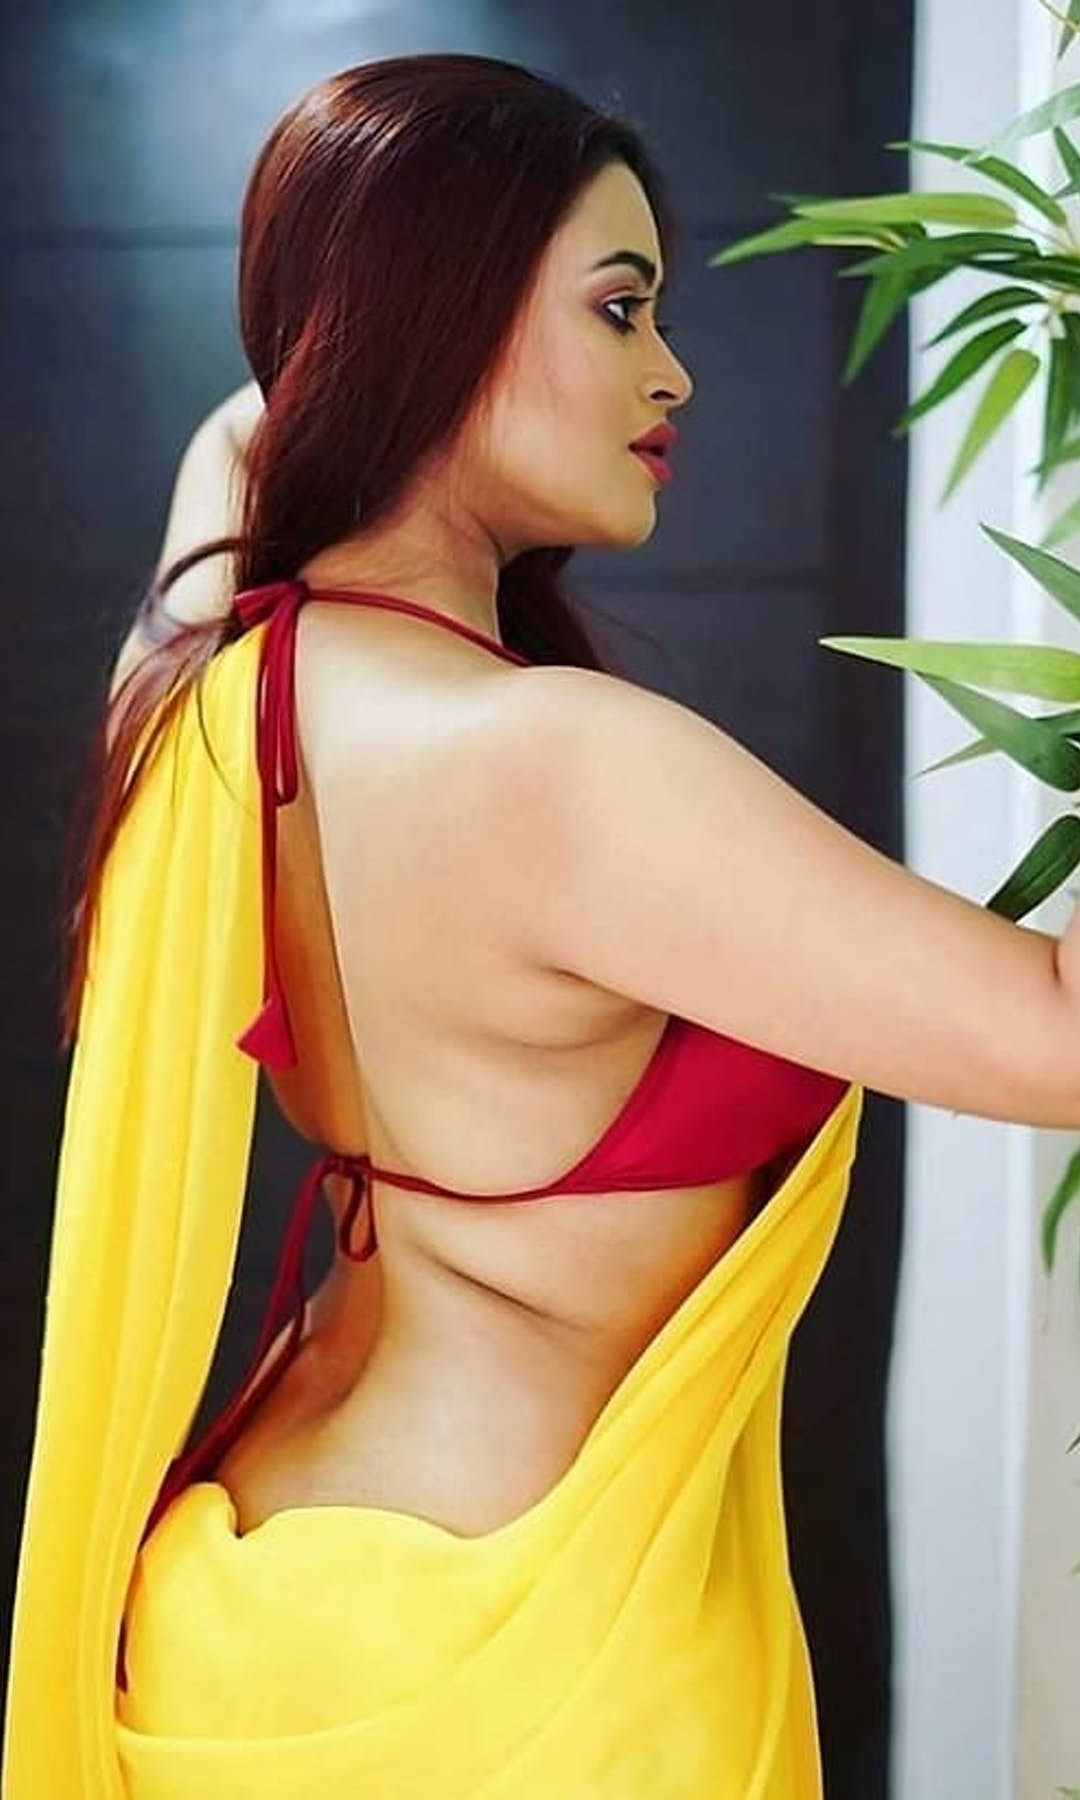 Madchen indian hot sare sexy